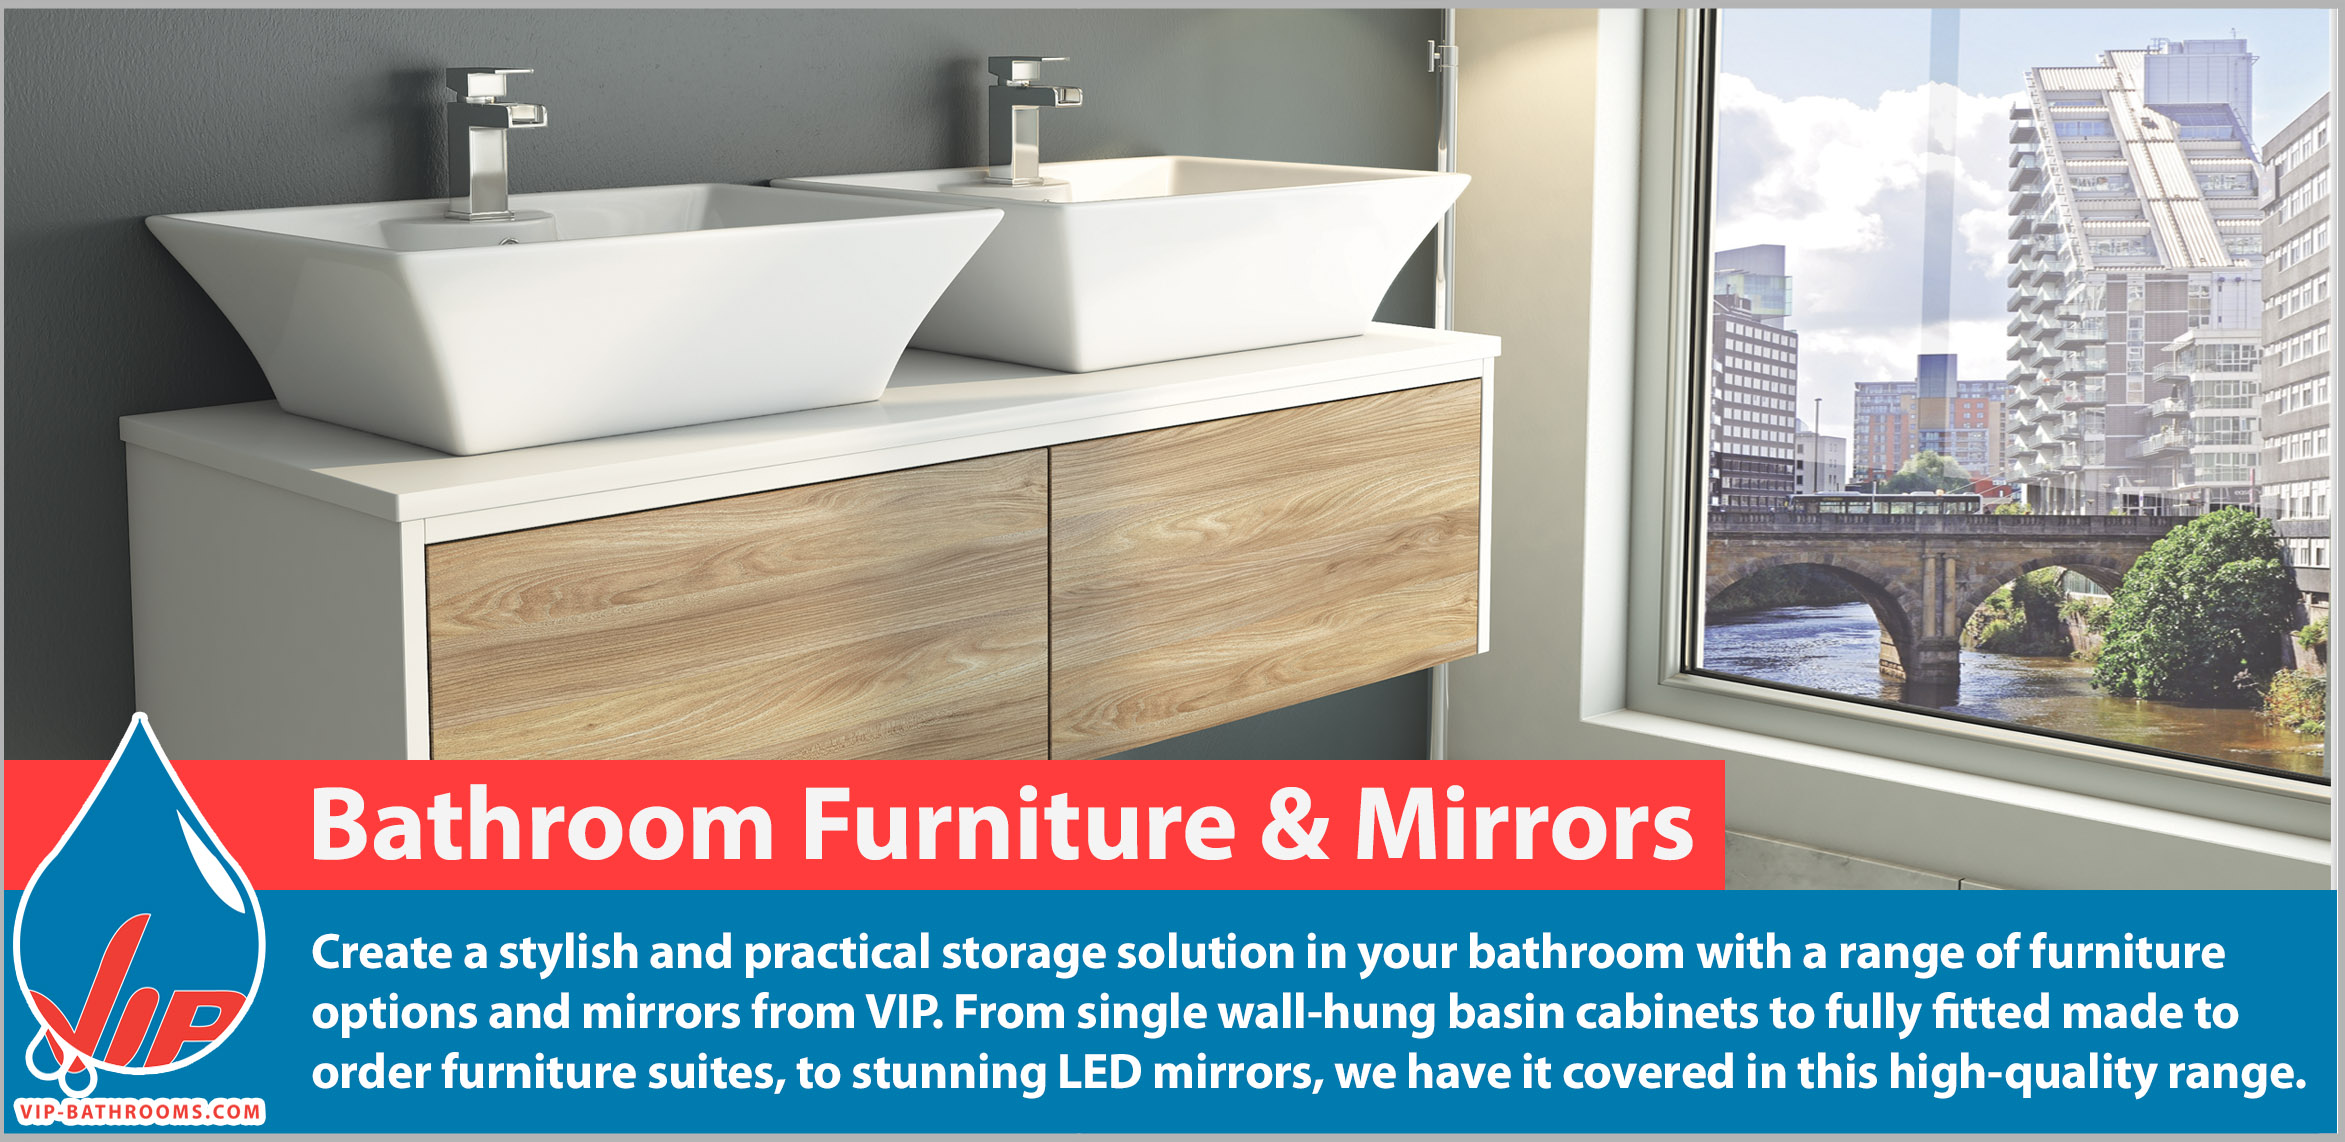 Create a stylish and practical storage solution in your bathroom with a range of furniture options and mirrors from VIP. From single wall-hung basin cabinets to fully fitted made to order furniture suites, to stunning LED mirrors, we have it covered in this high-quality range. The VIP Bathrooms range of deluxe Bathroom Furniture and Mirrors add eye-catching style and sparkle to your home.